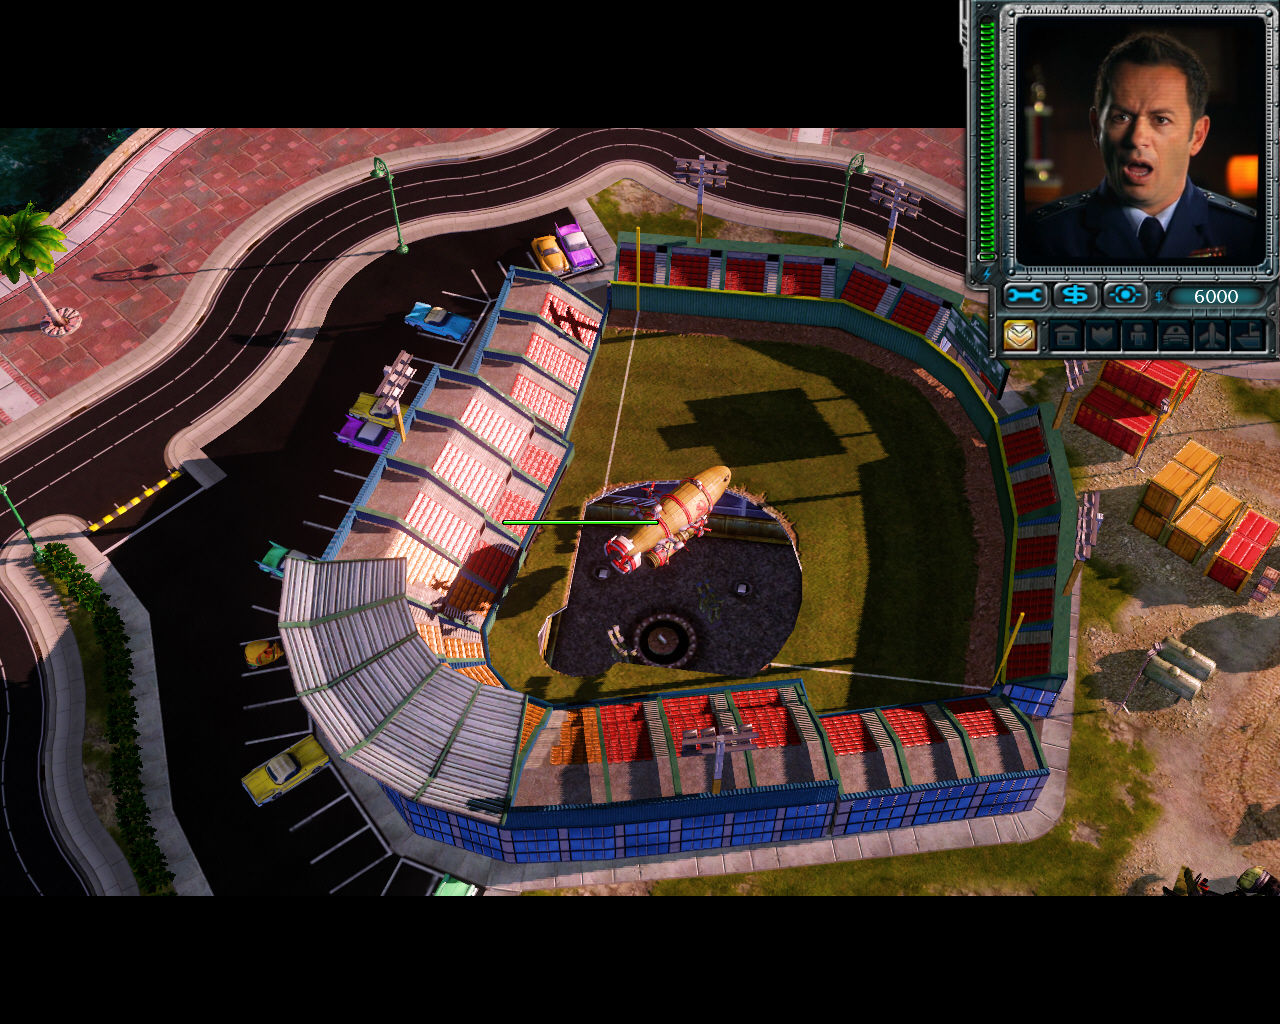 Command & Conquer: Red Alert 3 Windows Surprise from the baseball stadium.